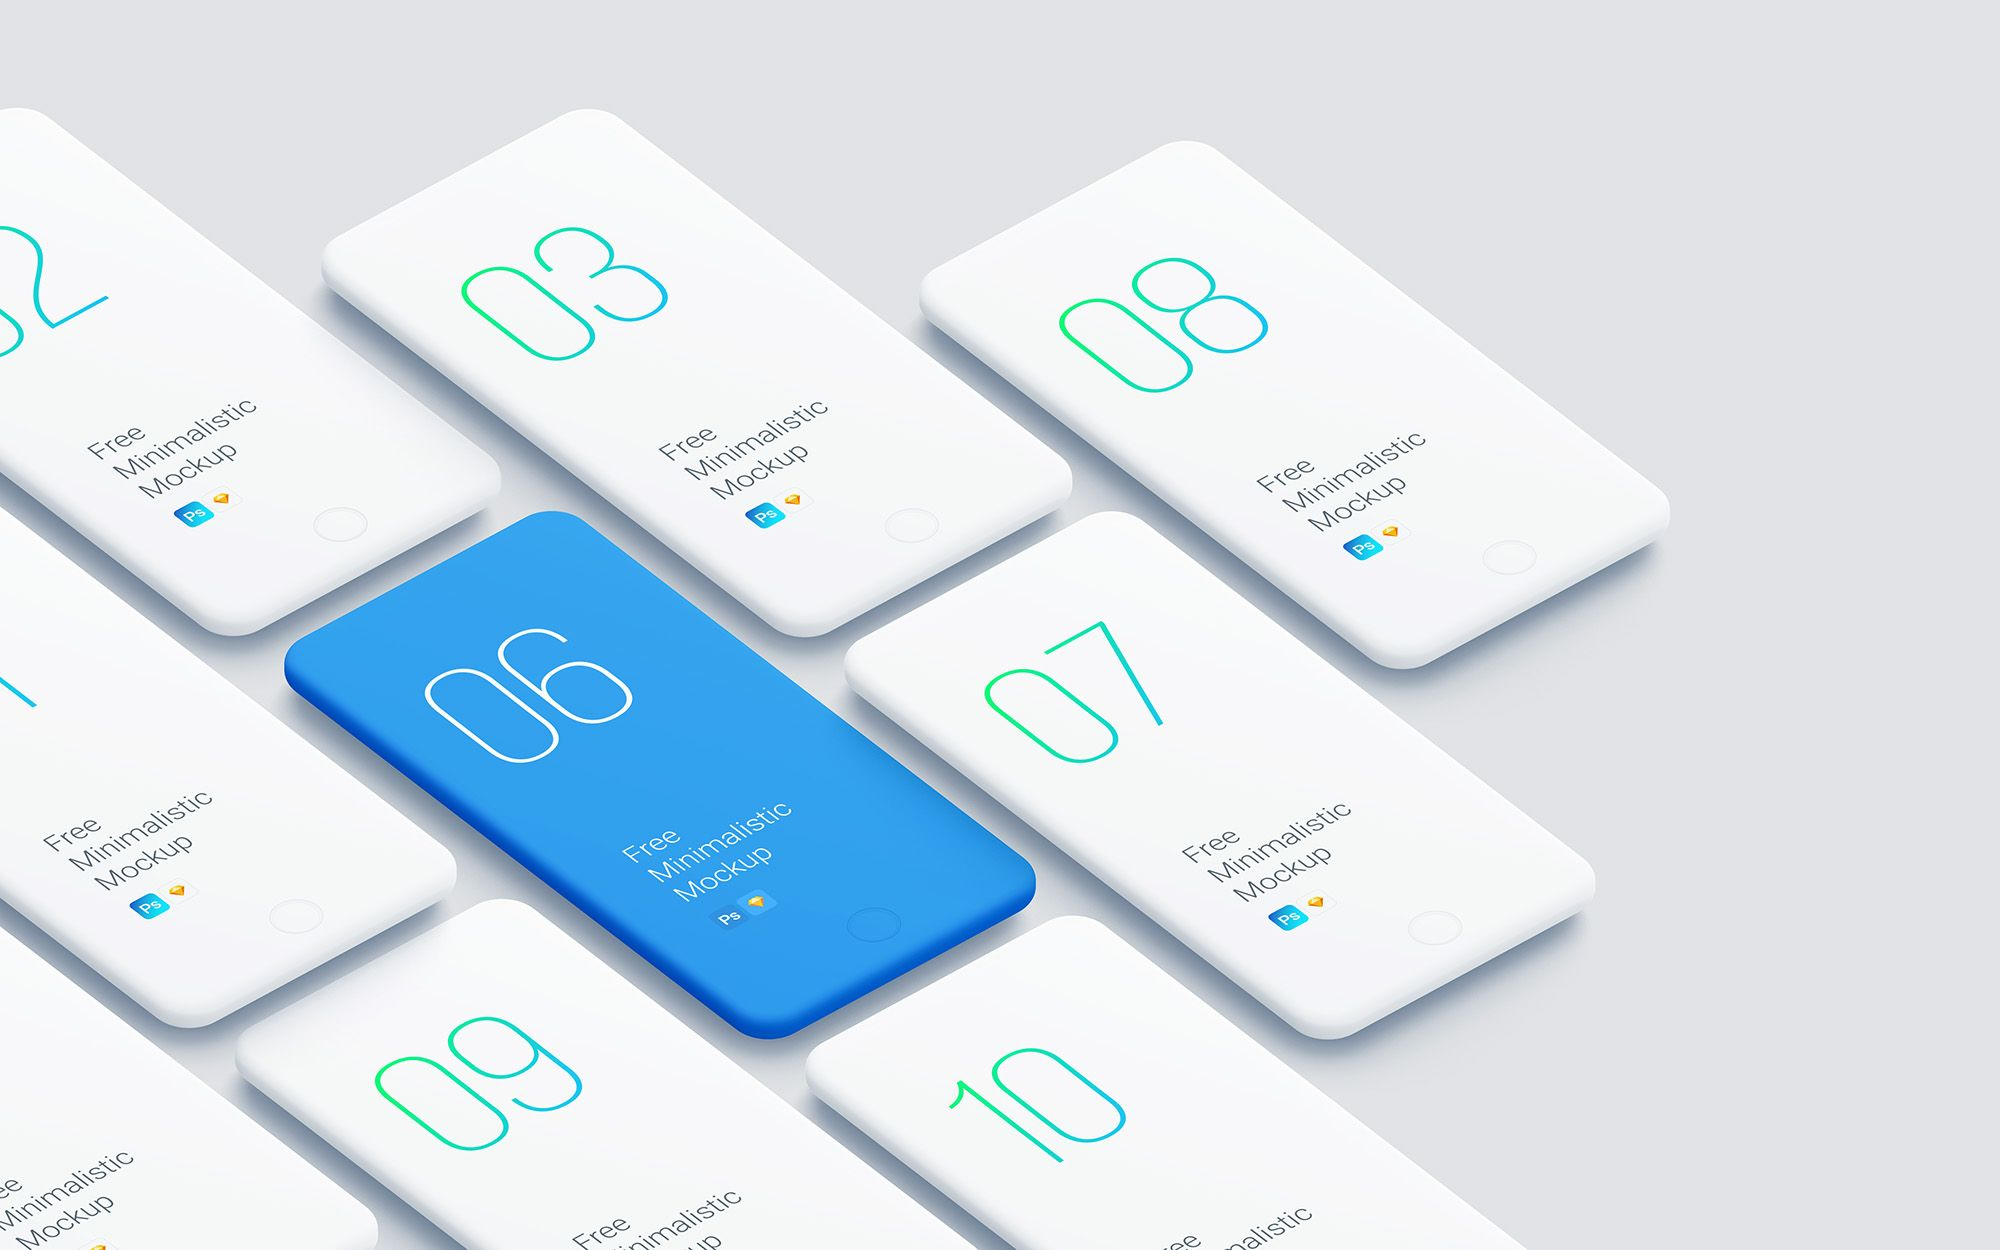 Today S Freebie Is A New Set Of Smartphone Clay Mockups For Showcasing Apps And Mobile Website Designs Mockups Come Phone Mockup Iphone Mockup Phone Template